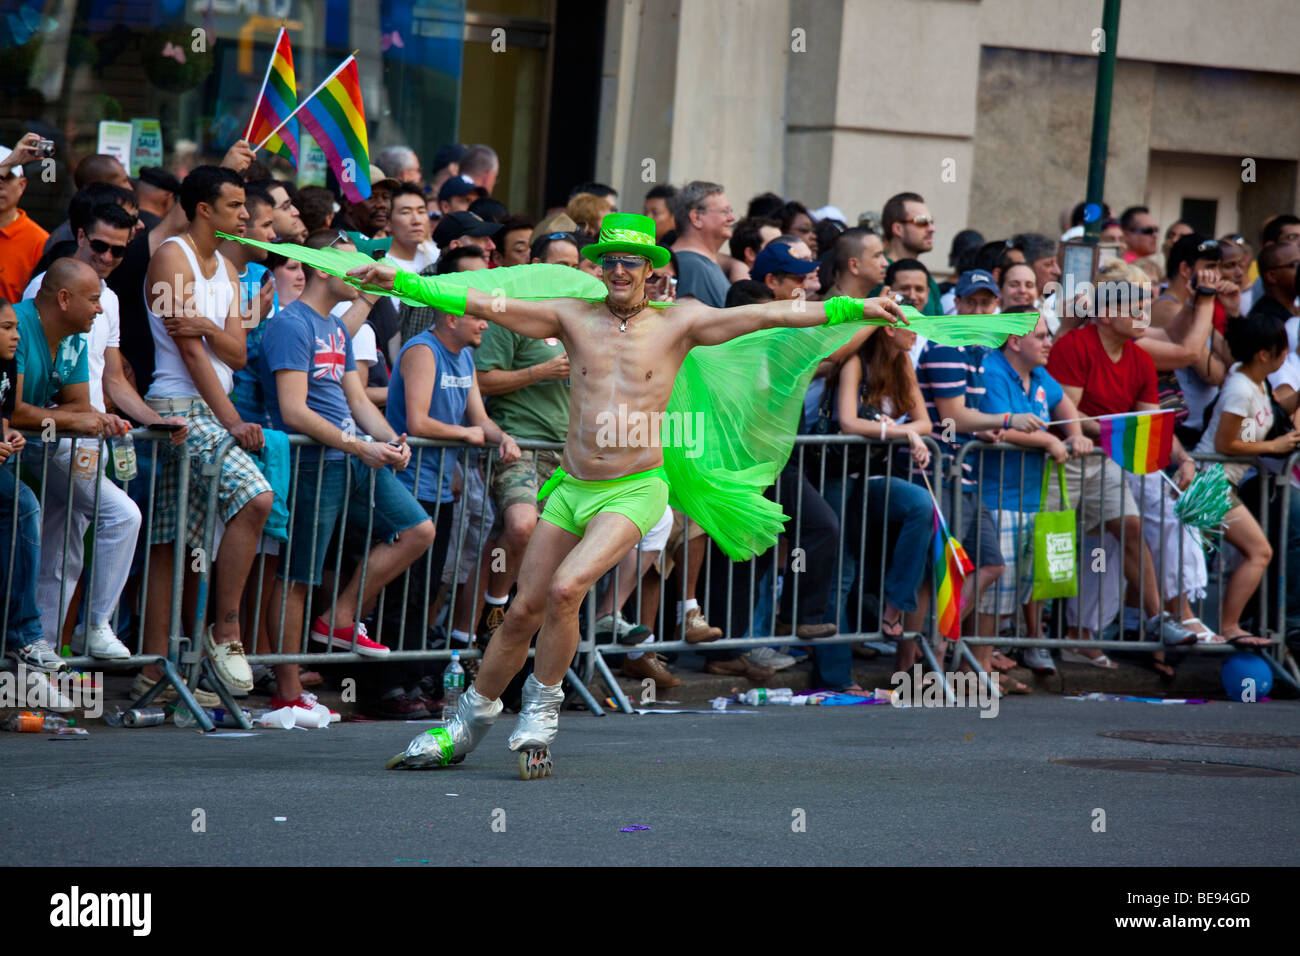 Best gay clubs in the midwest